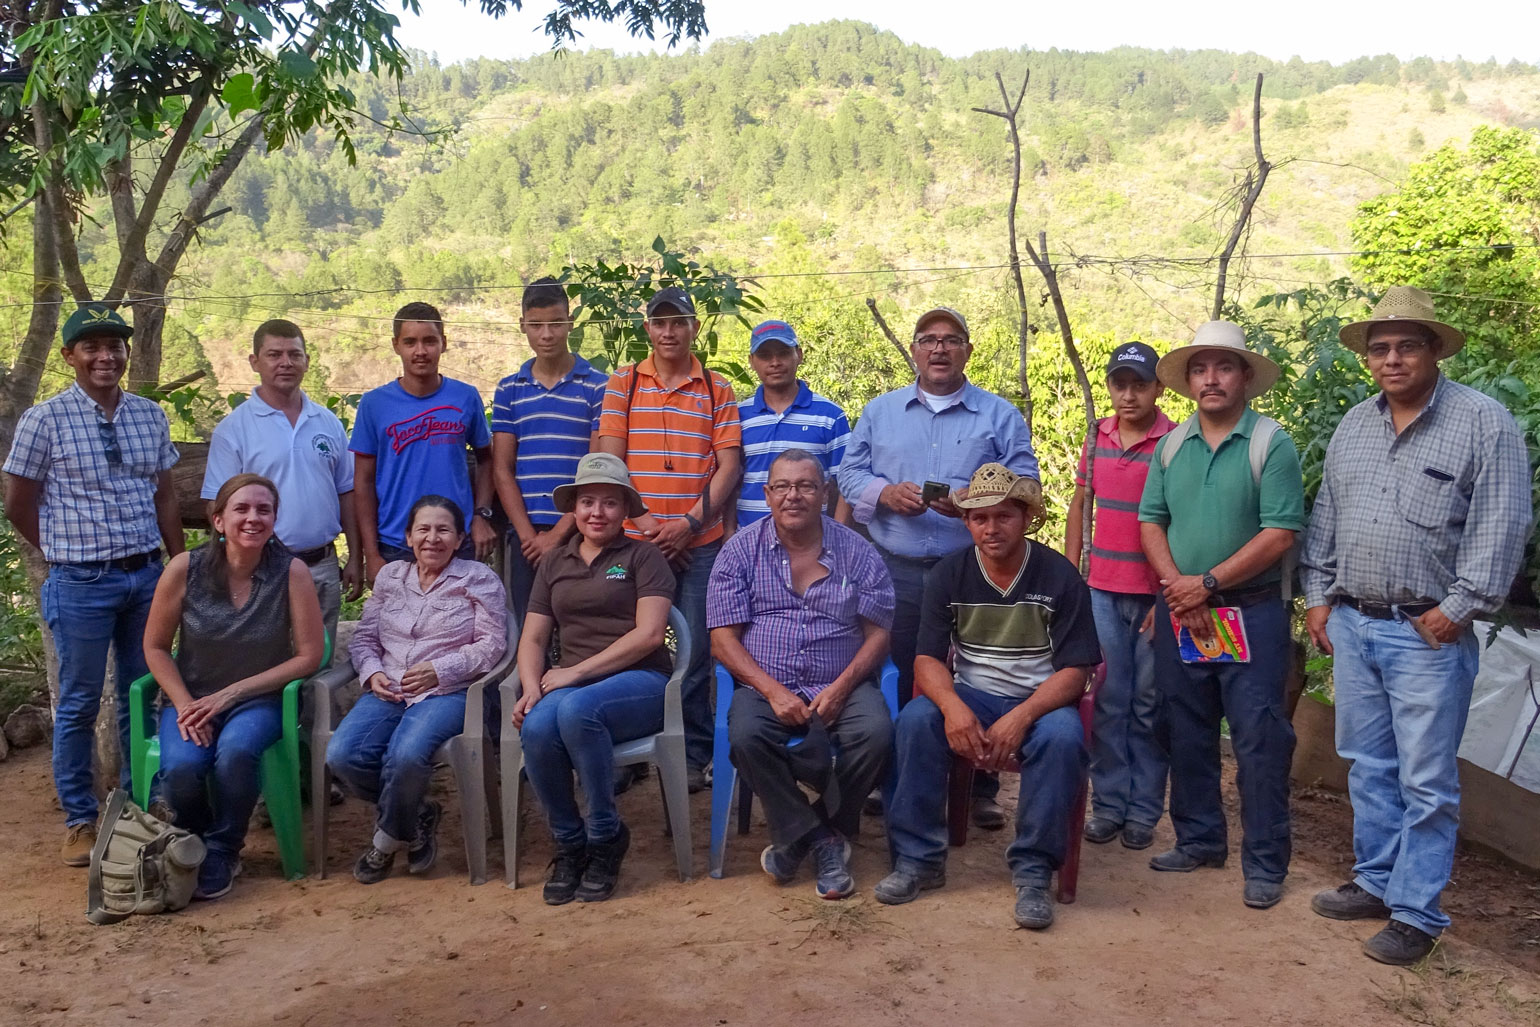 Farming through hardship: A family farmer in Honduras discusses COVID, hurricanes and more - group photo of 15 people. The background is a mountain side.